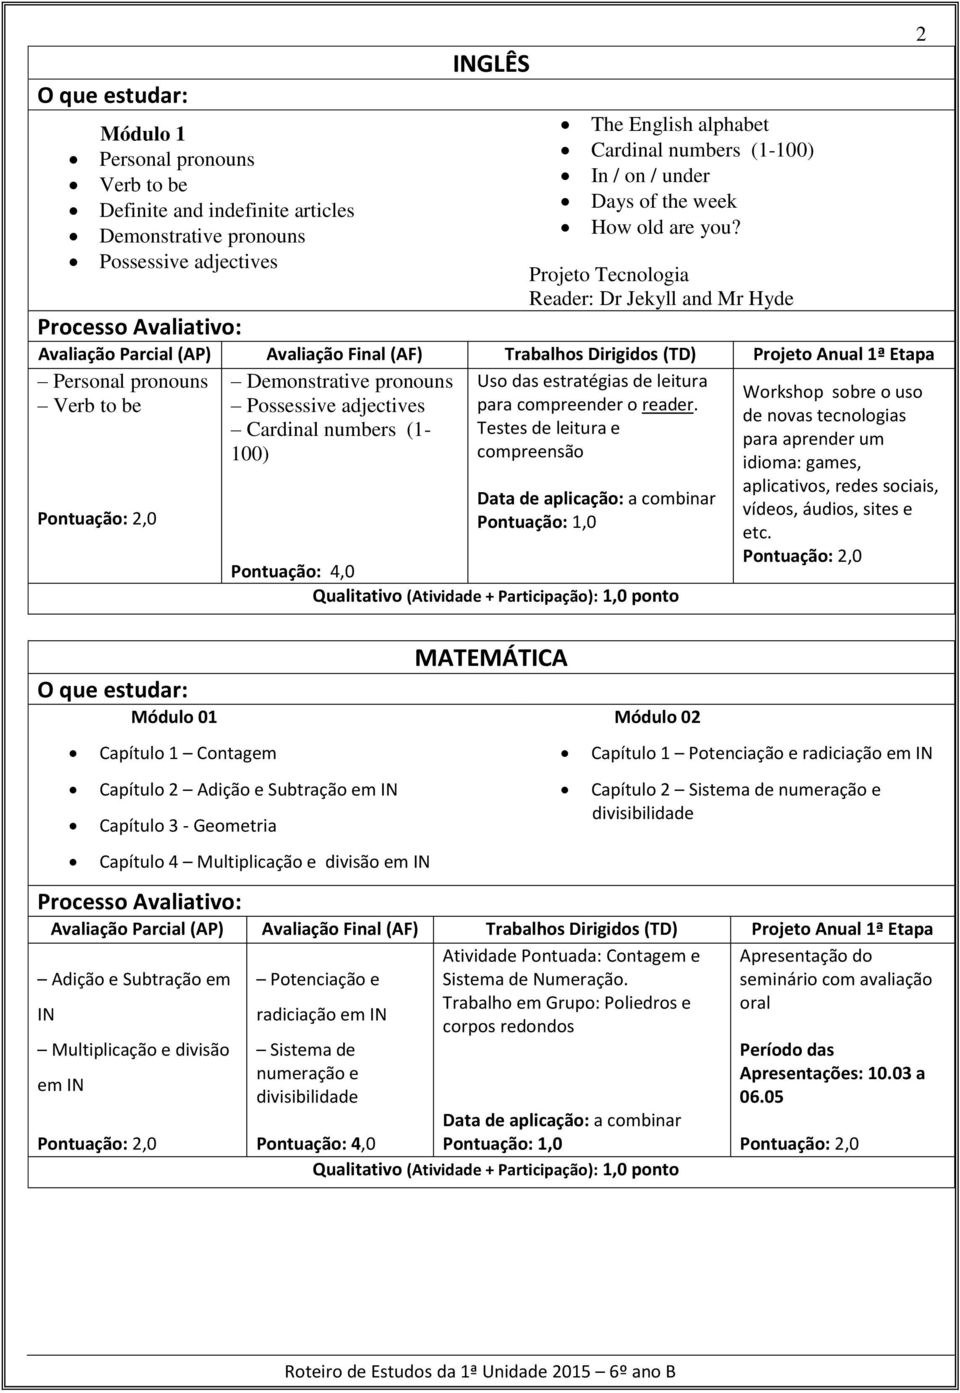 Projeto Tecnologia Reader: Dr Jekyll and Mr Hyde Personal pronouns Verb to be Módulo 01 Capítulo 1 Contagem Demonstrative pronouns Possessive adjectives Cardinal numbers (1-100) Uso das estratégias